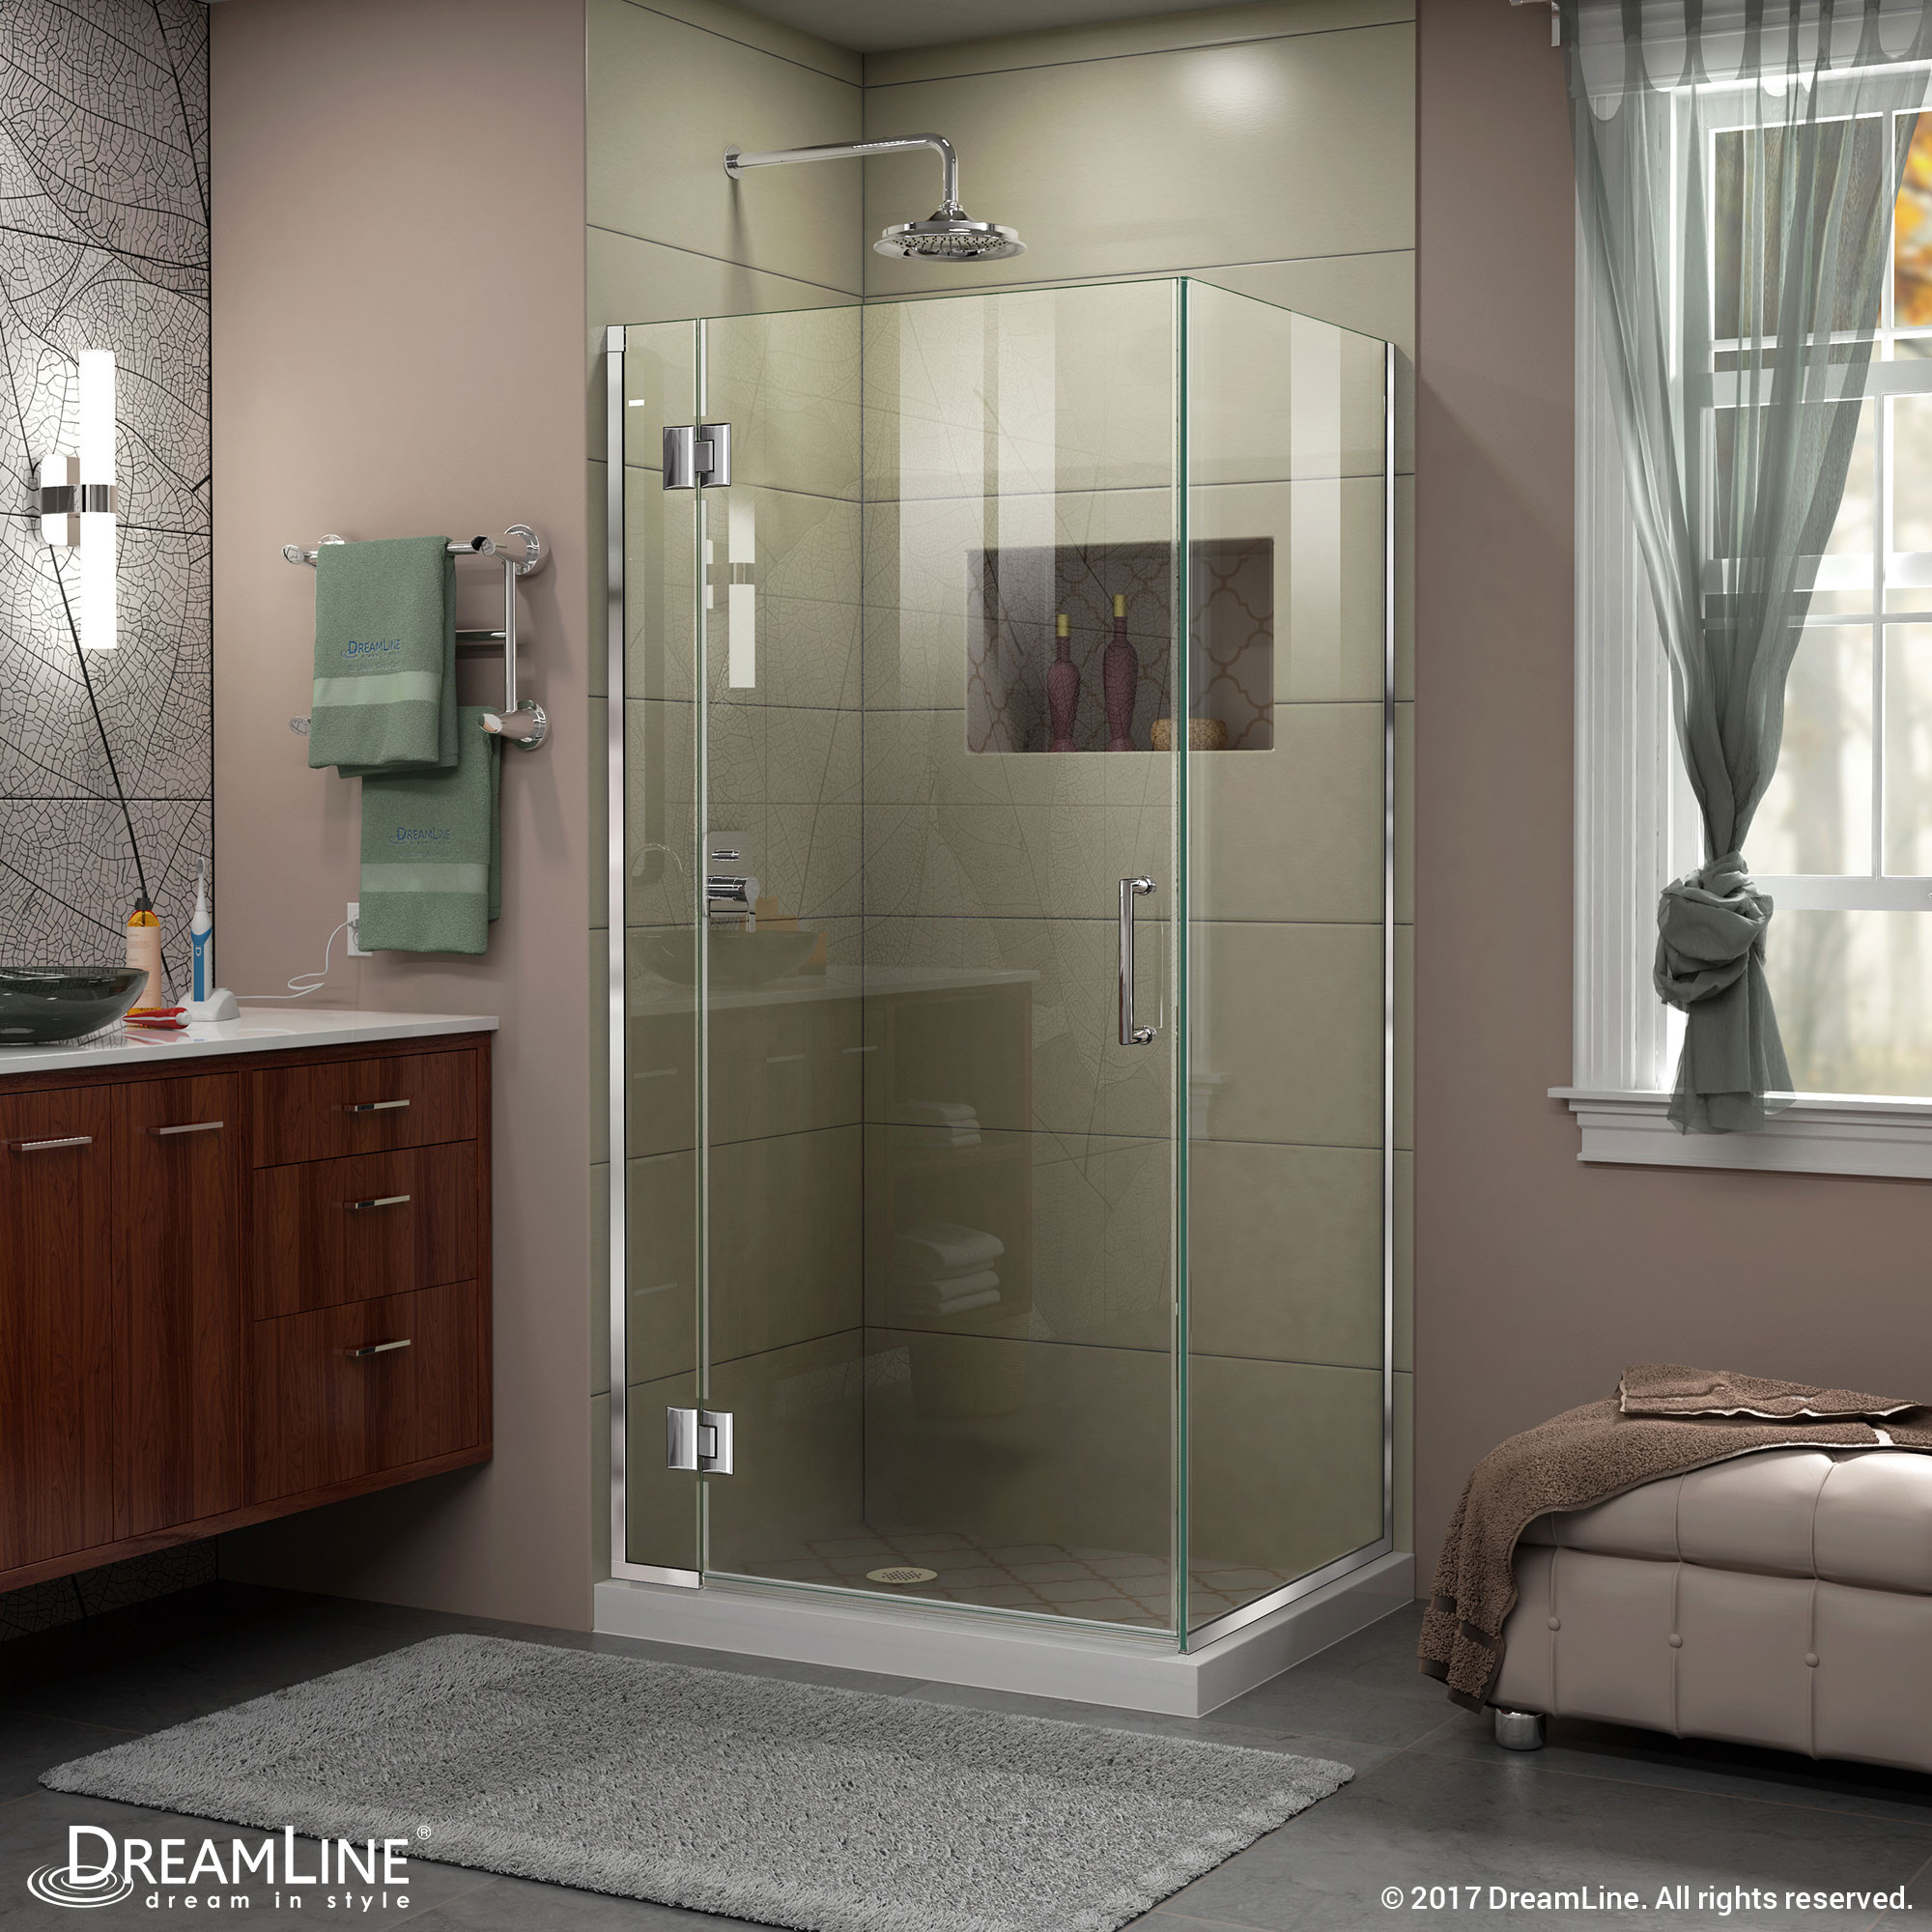 DreamLine E12934-01 Chrome 35-3/8 in. W x 34 in. D x 72 in. H Hinged Shower Enclosure